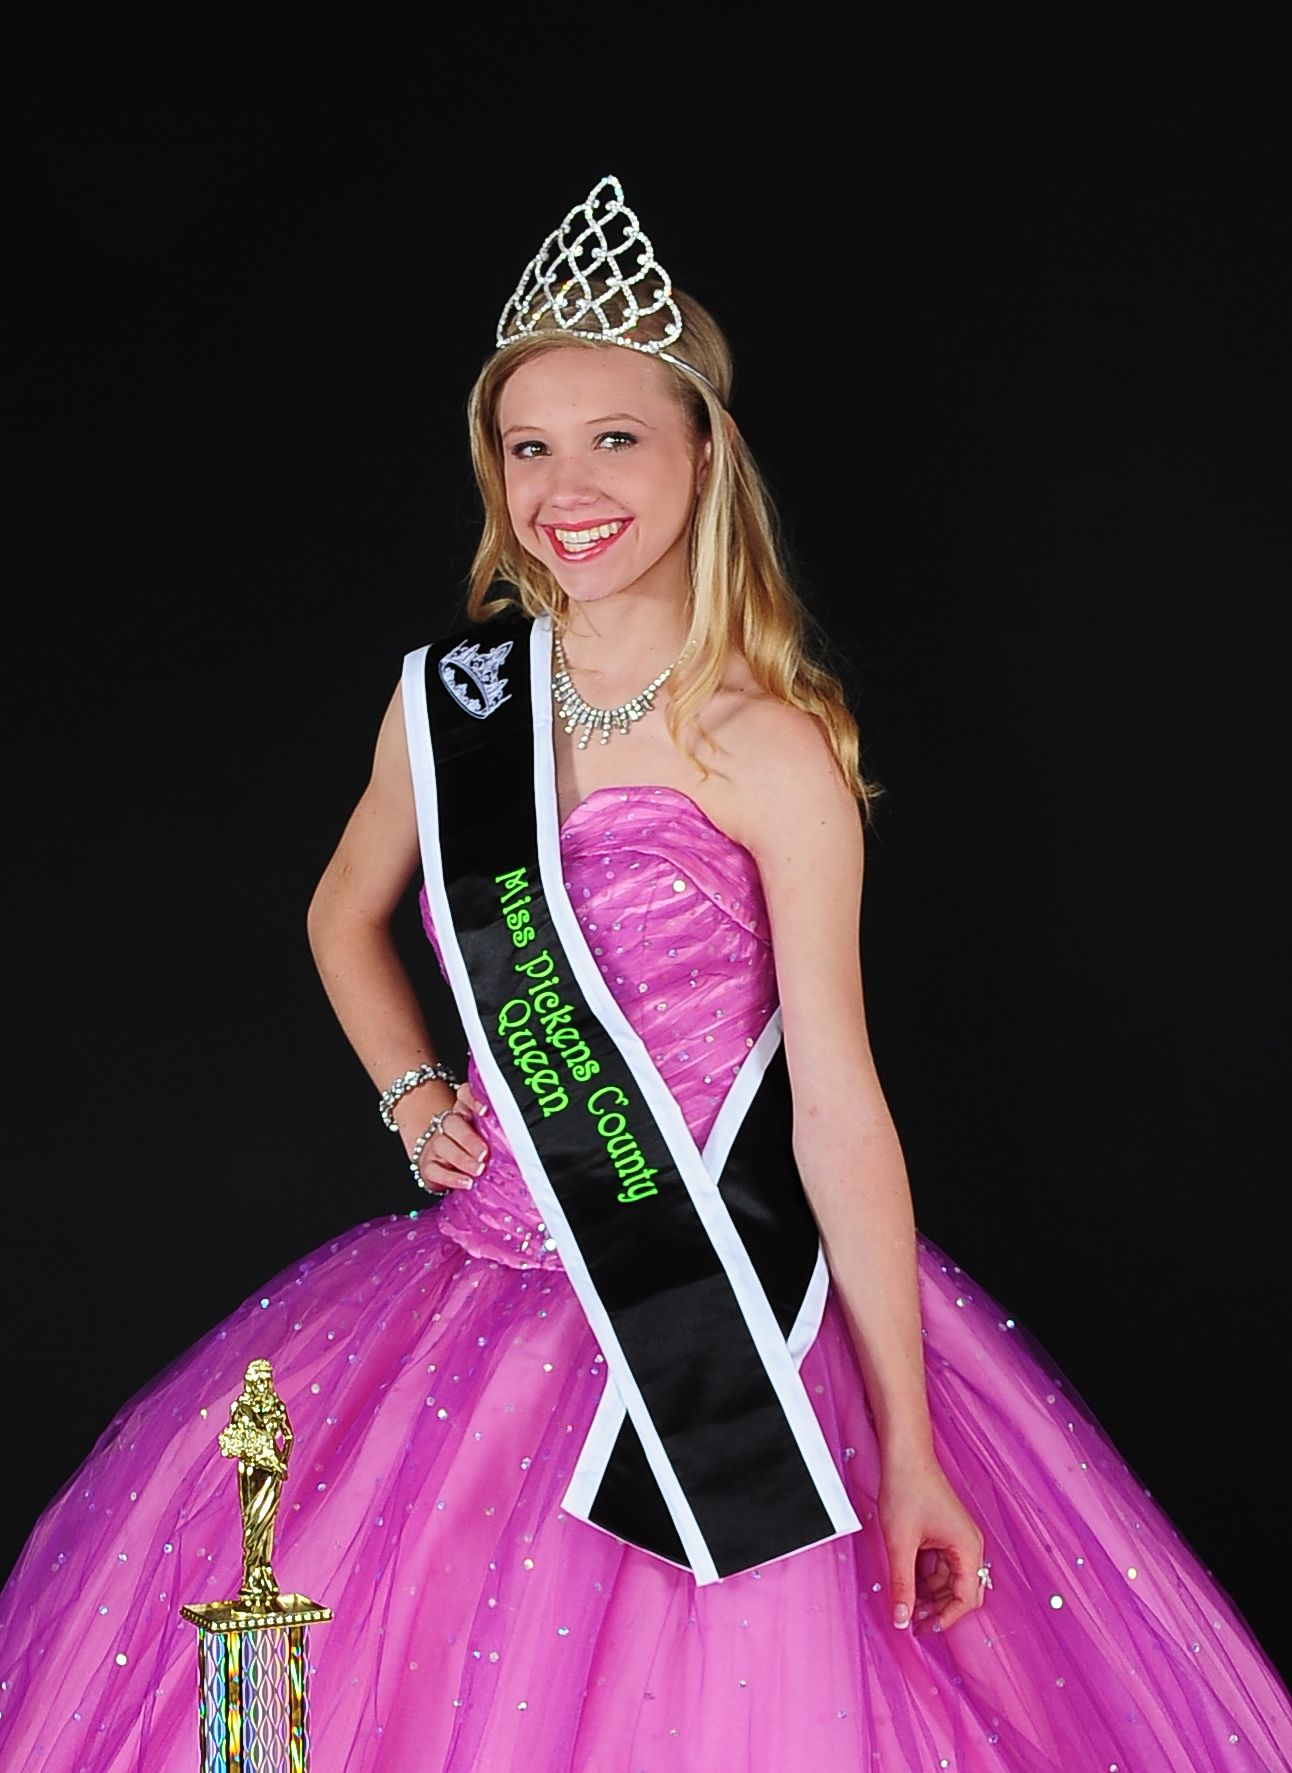 Miss pickens county pageant apexwallpapers com